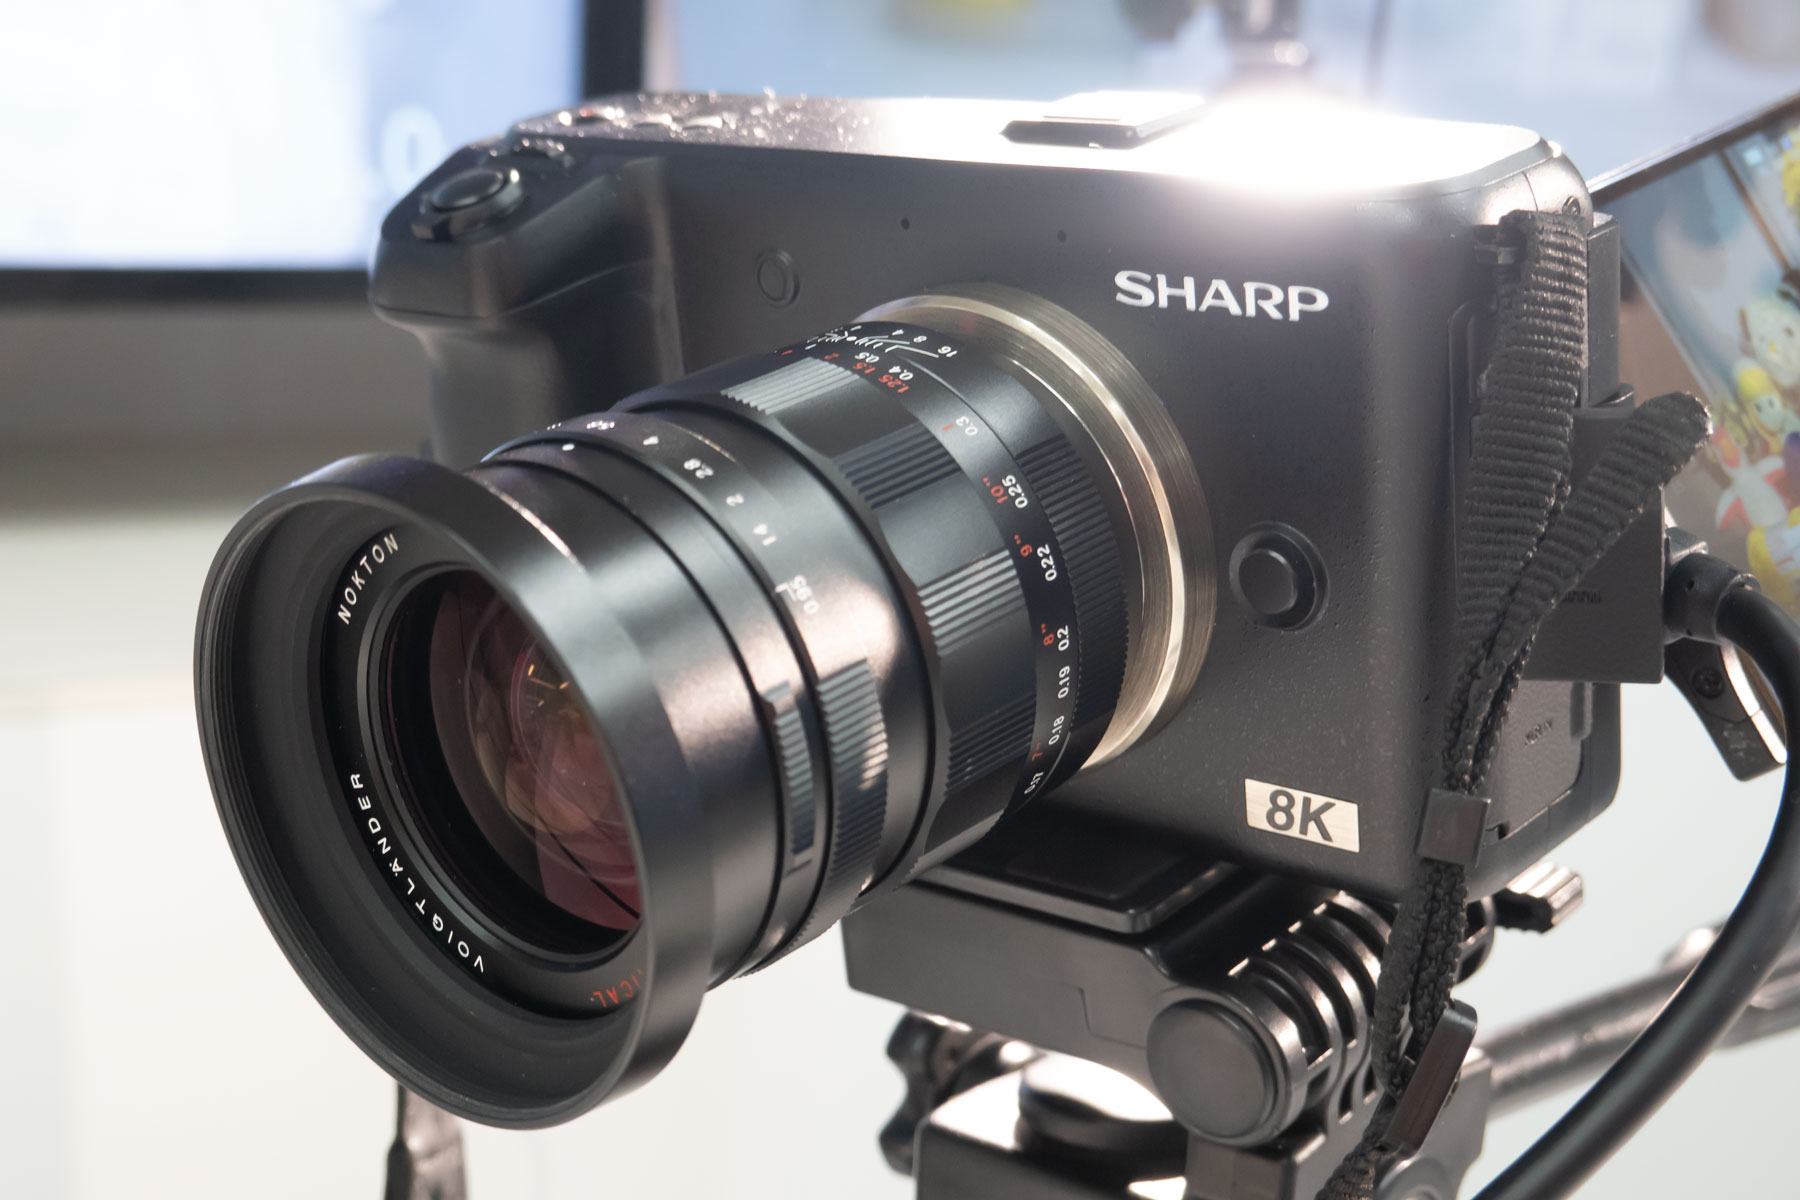 Sharp introduced in Japan for the first time an 8K / 30p